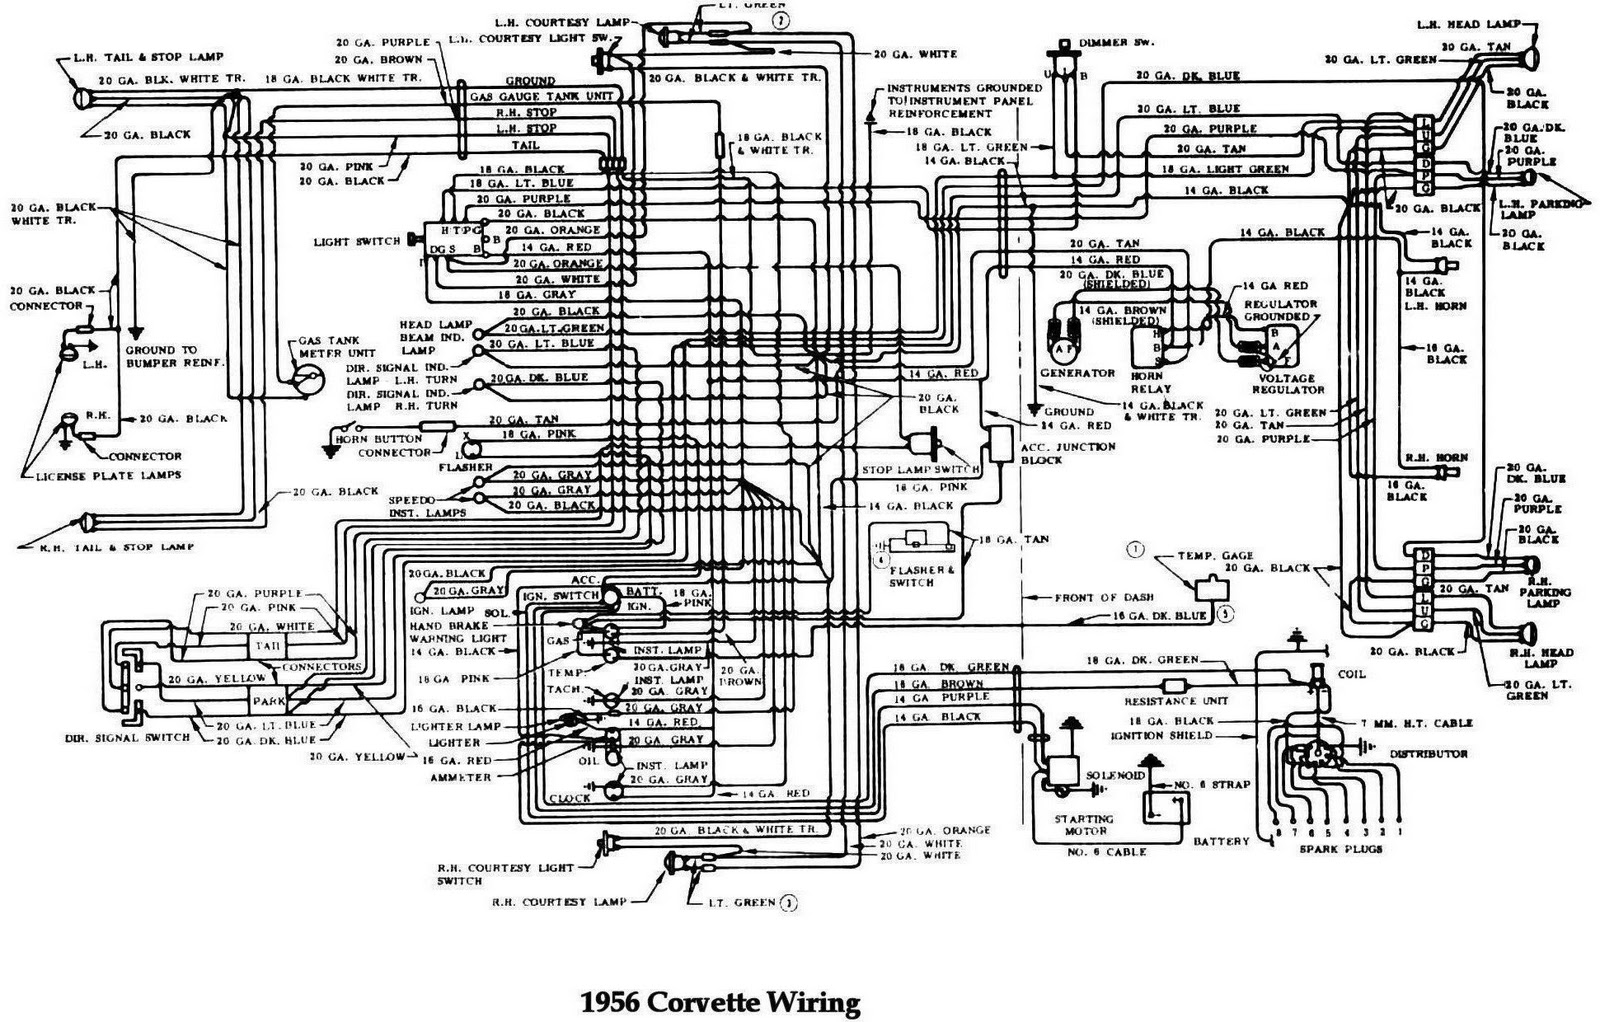 diagram] 2012 chevrolet sonic wiring diagram full version hd quality wiring  diagram - suite2th.lesgaspards.fr  suite2th.lesgaspards.fr